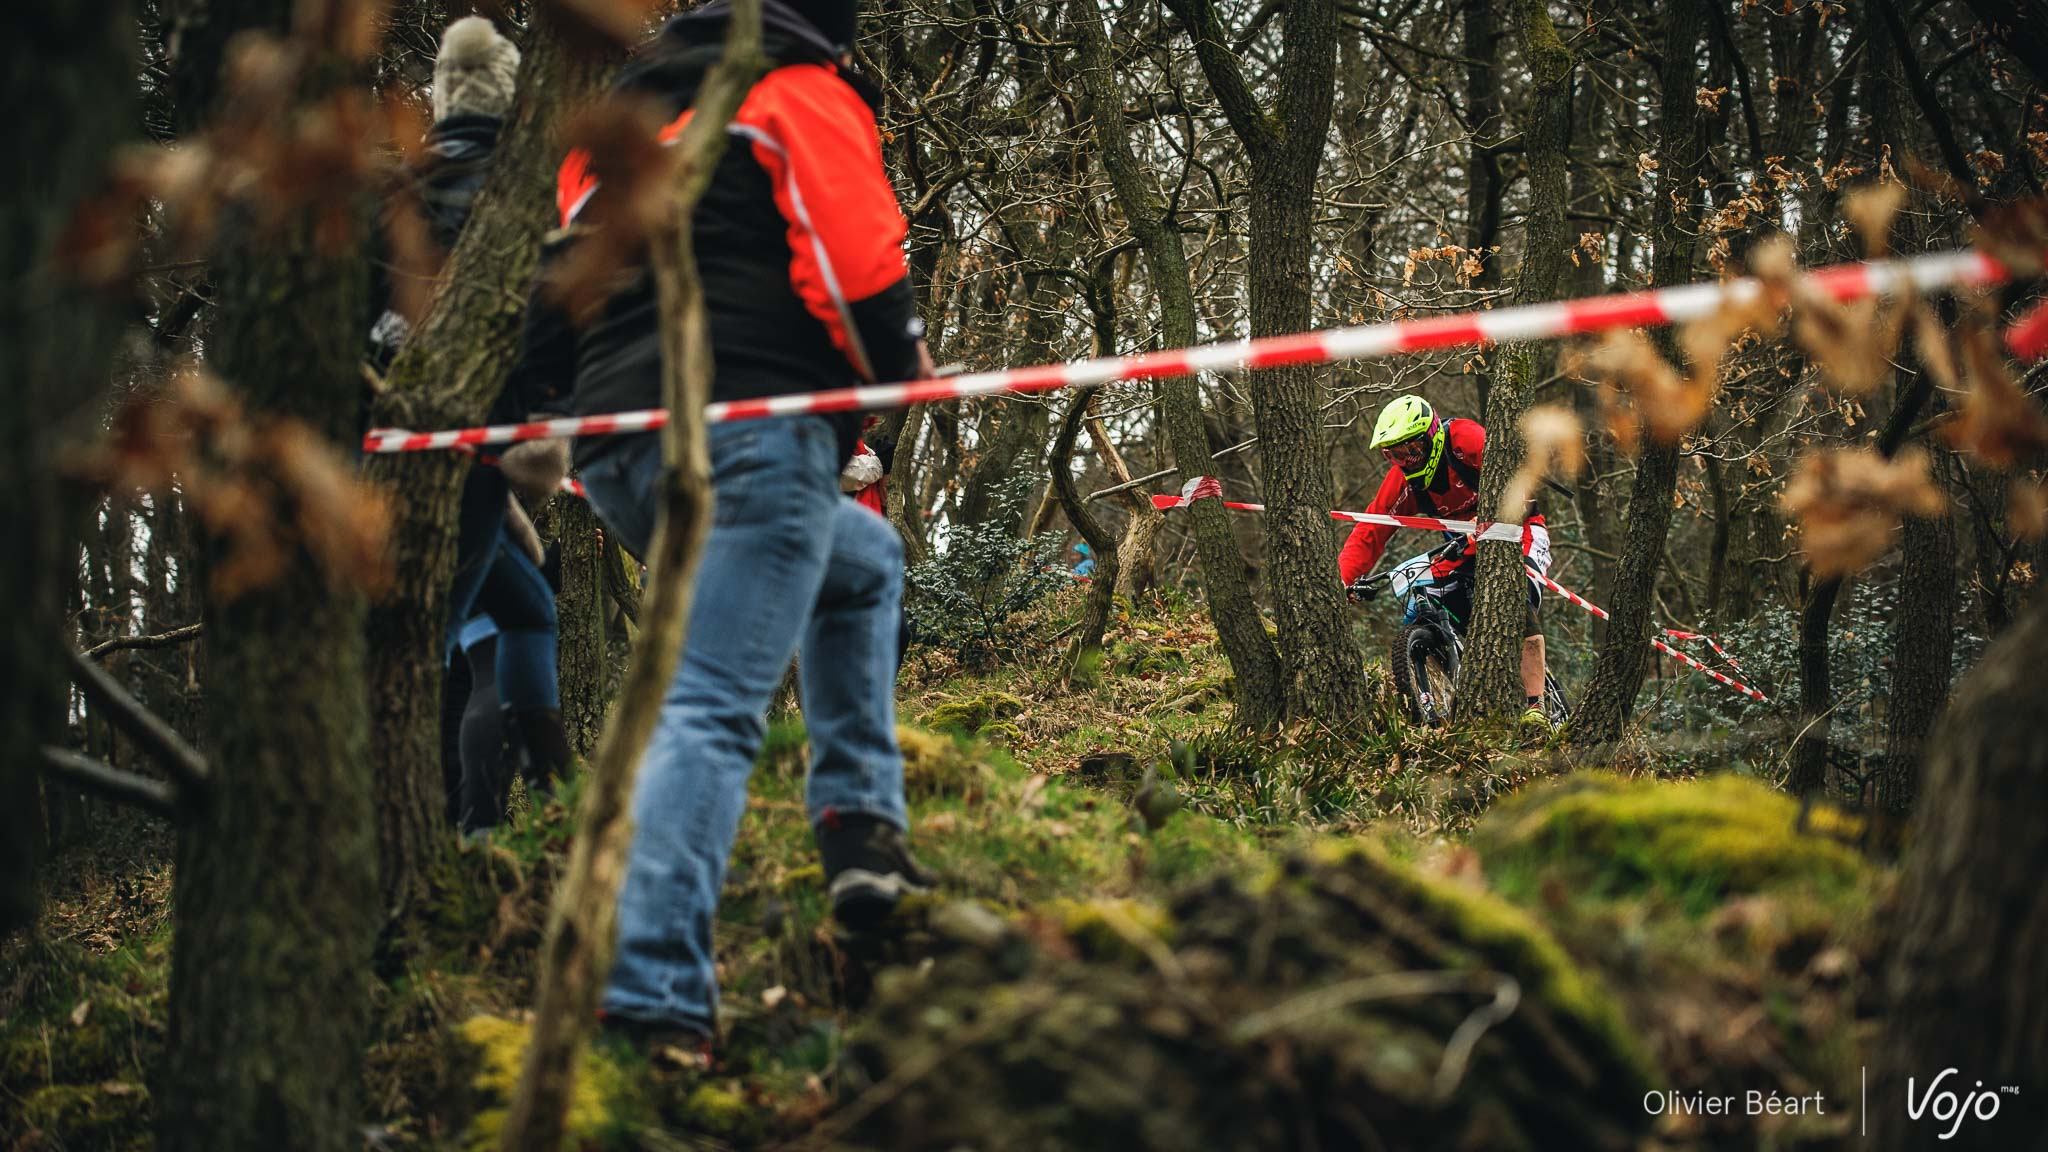 Belgian_Enduro_Cup_Chaudfontaine_2016_Copyright_OBeart_Vojomag-17